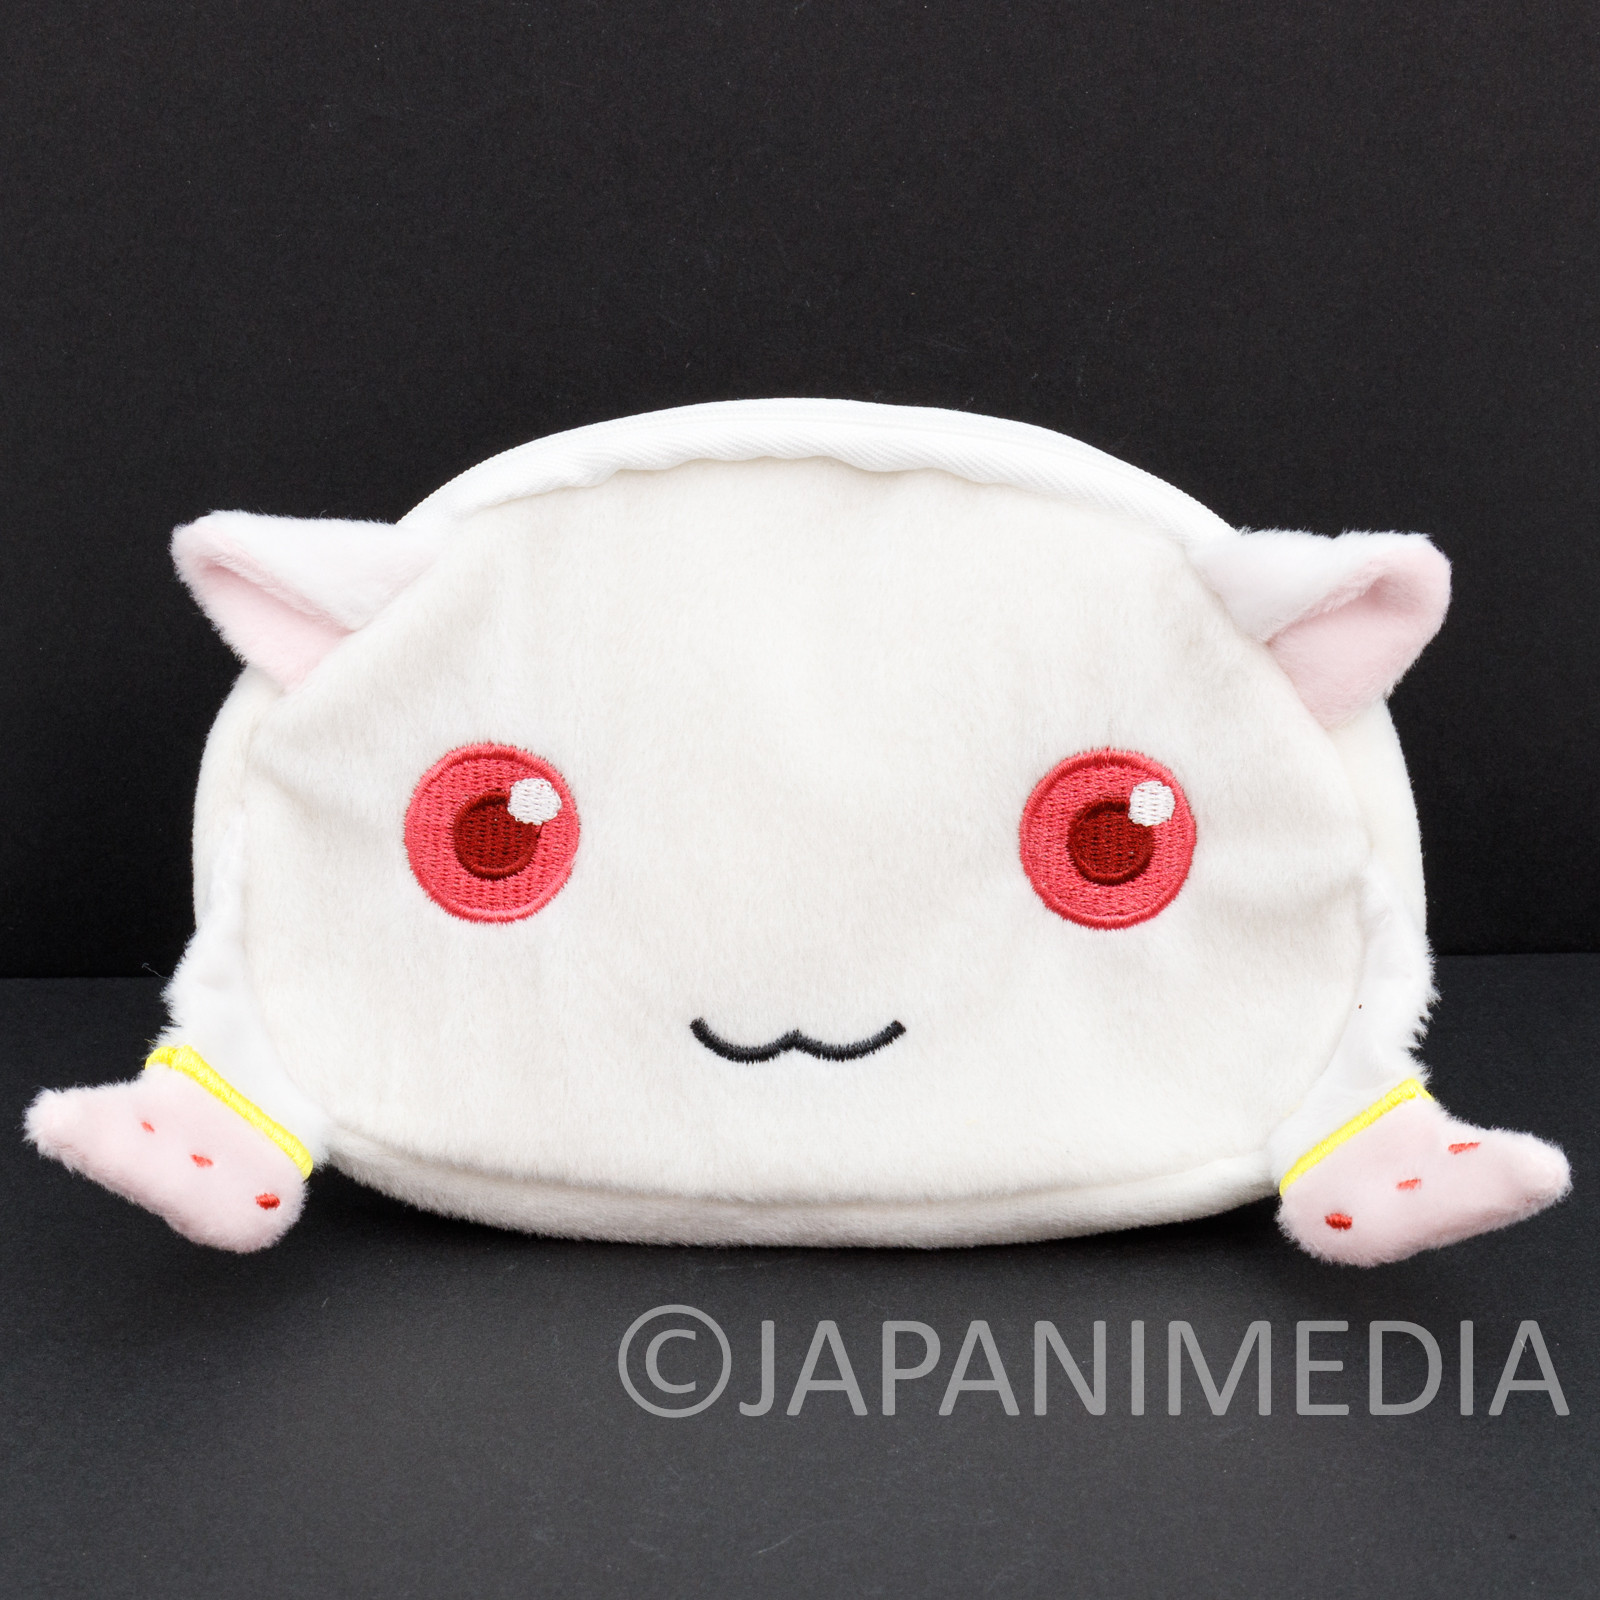 Puella Magi Madoka Magica Kyubey Face Type Pouch Case JAPAN ANIME